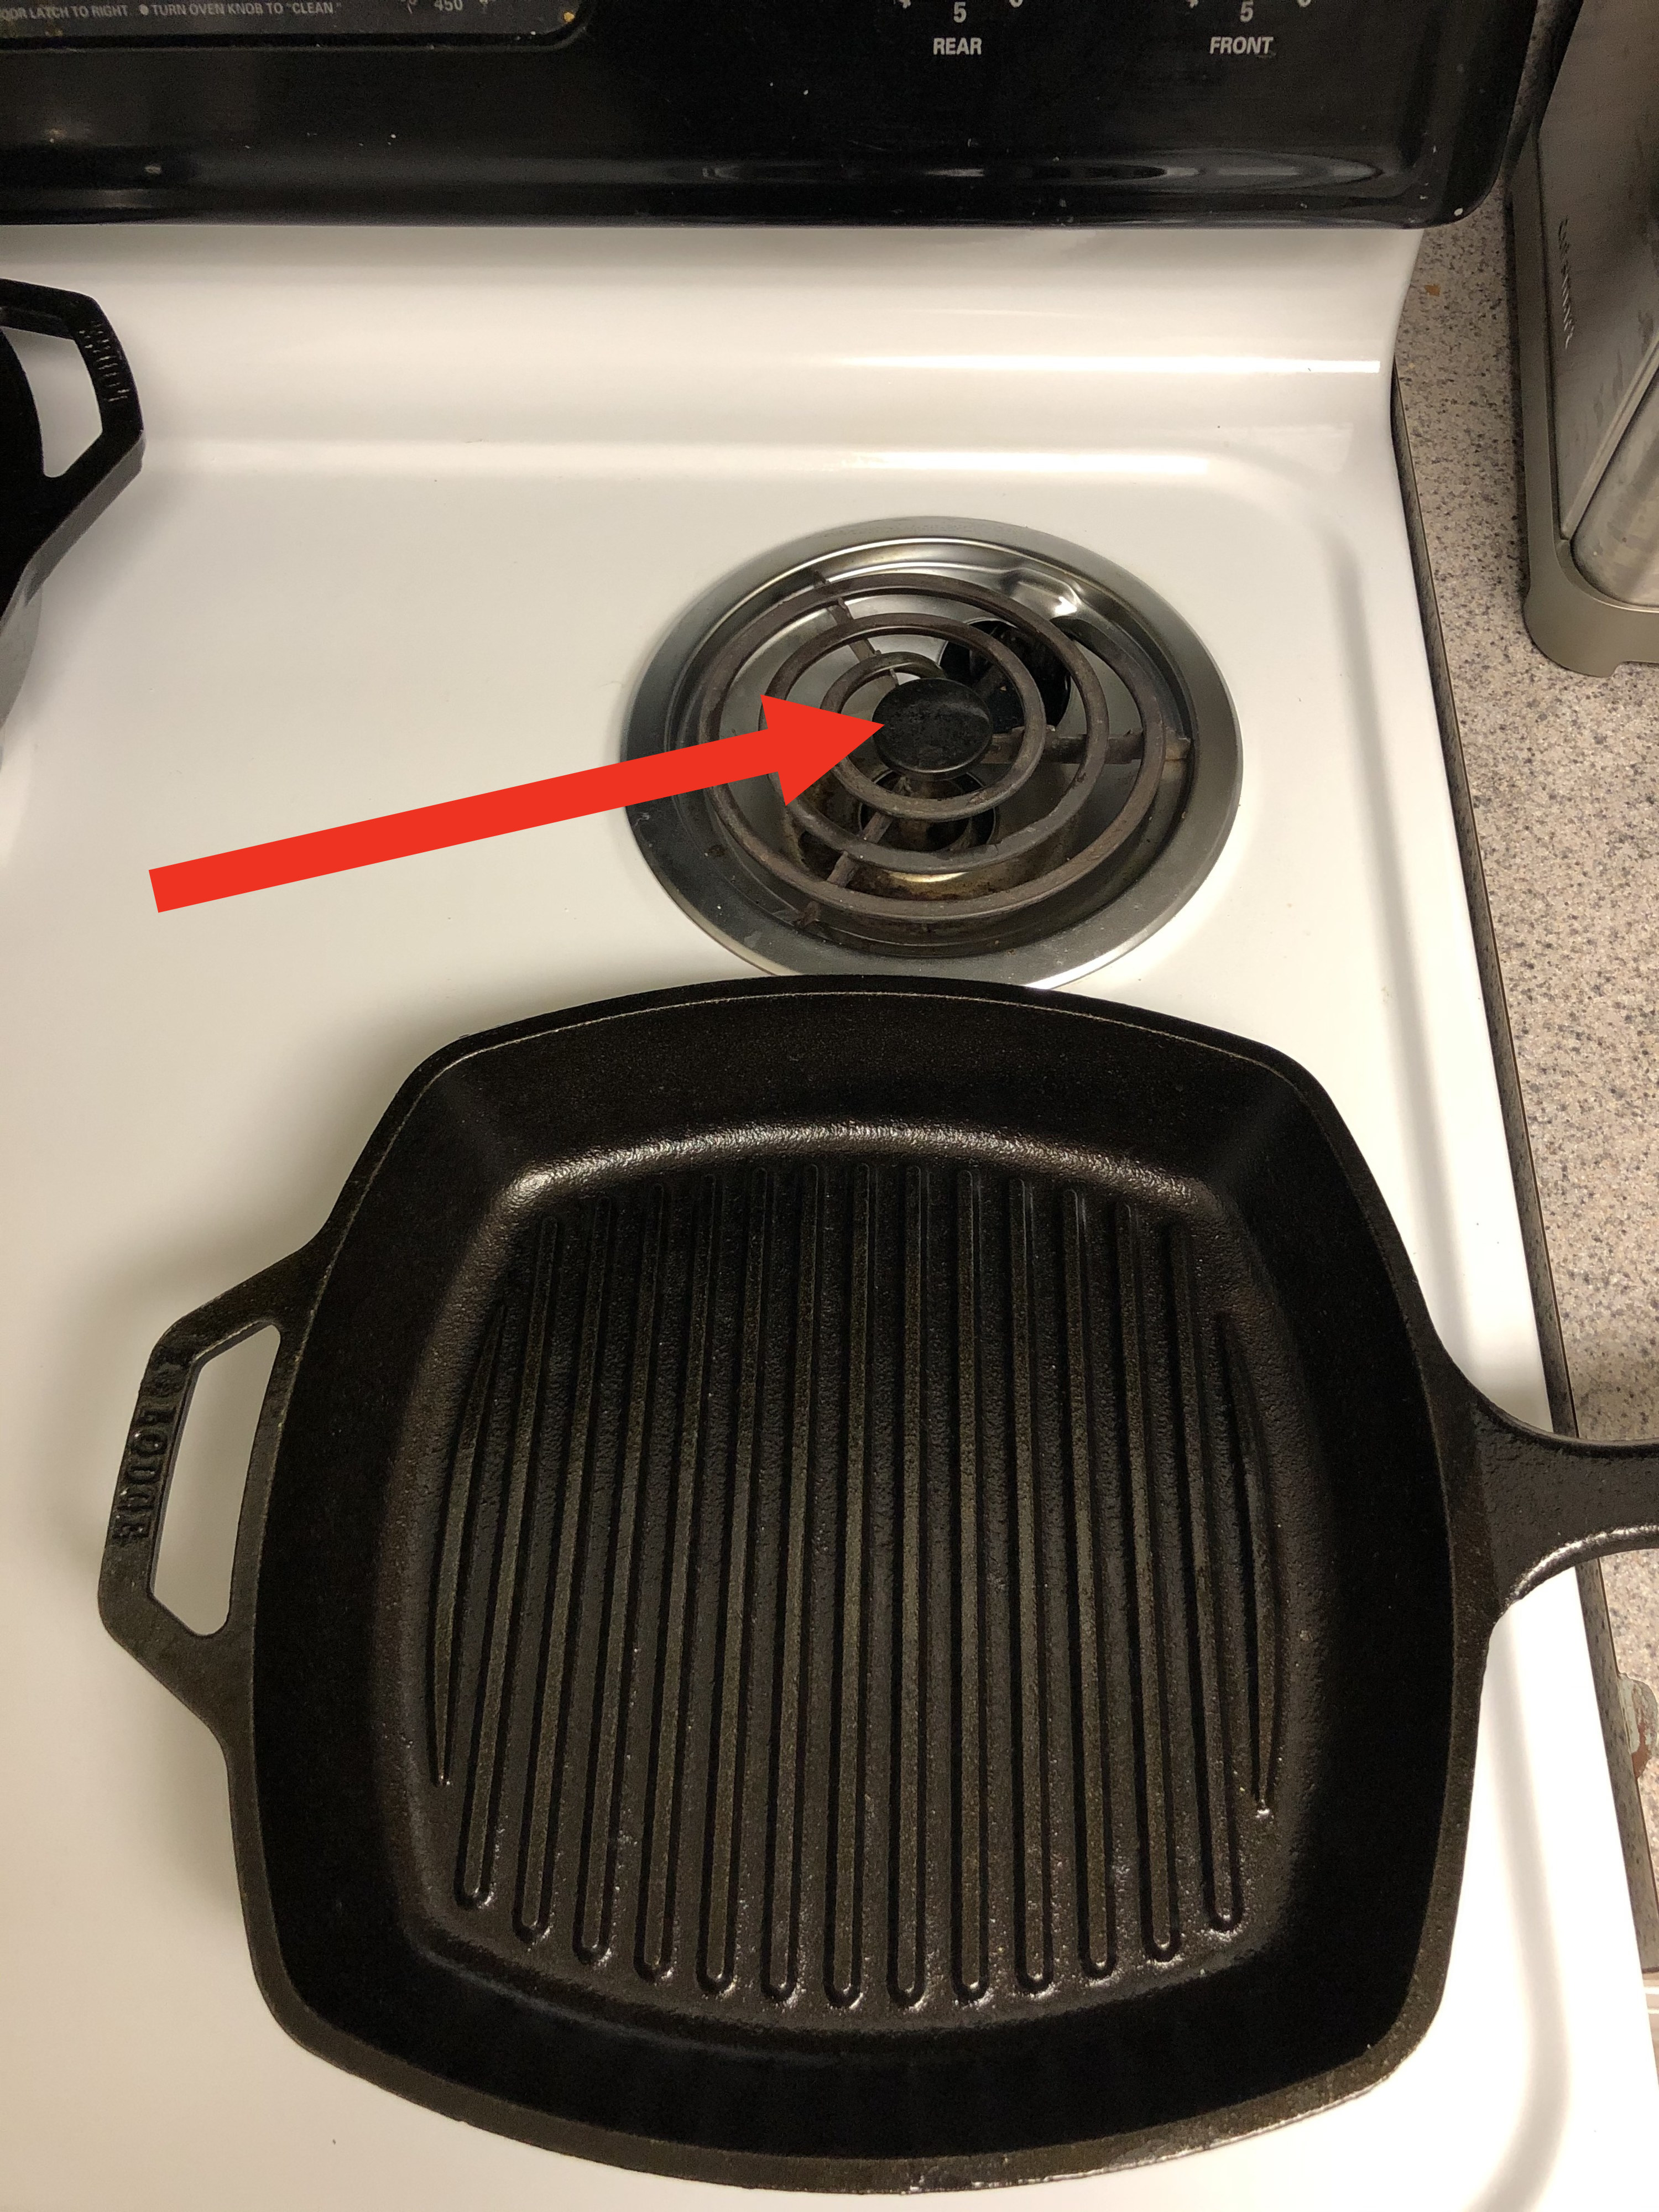 An electric stovetop